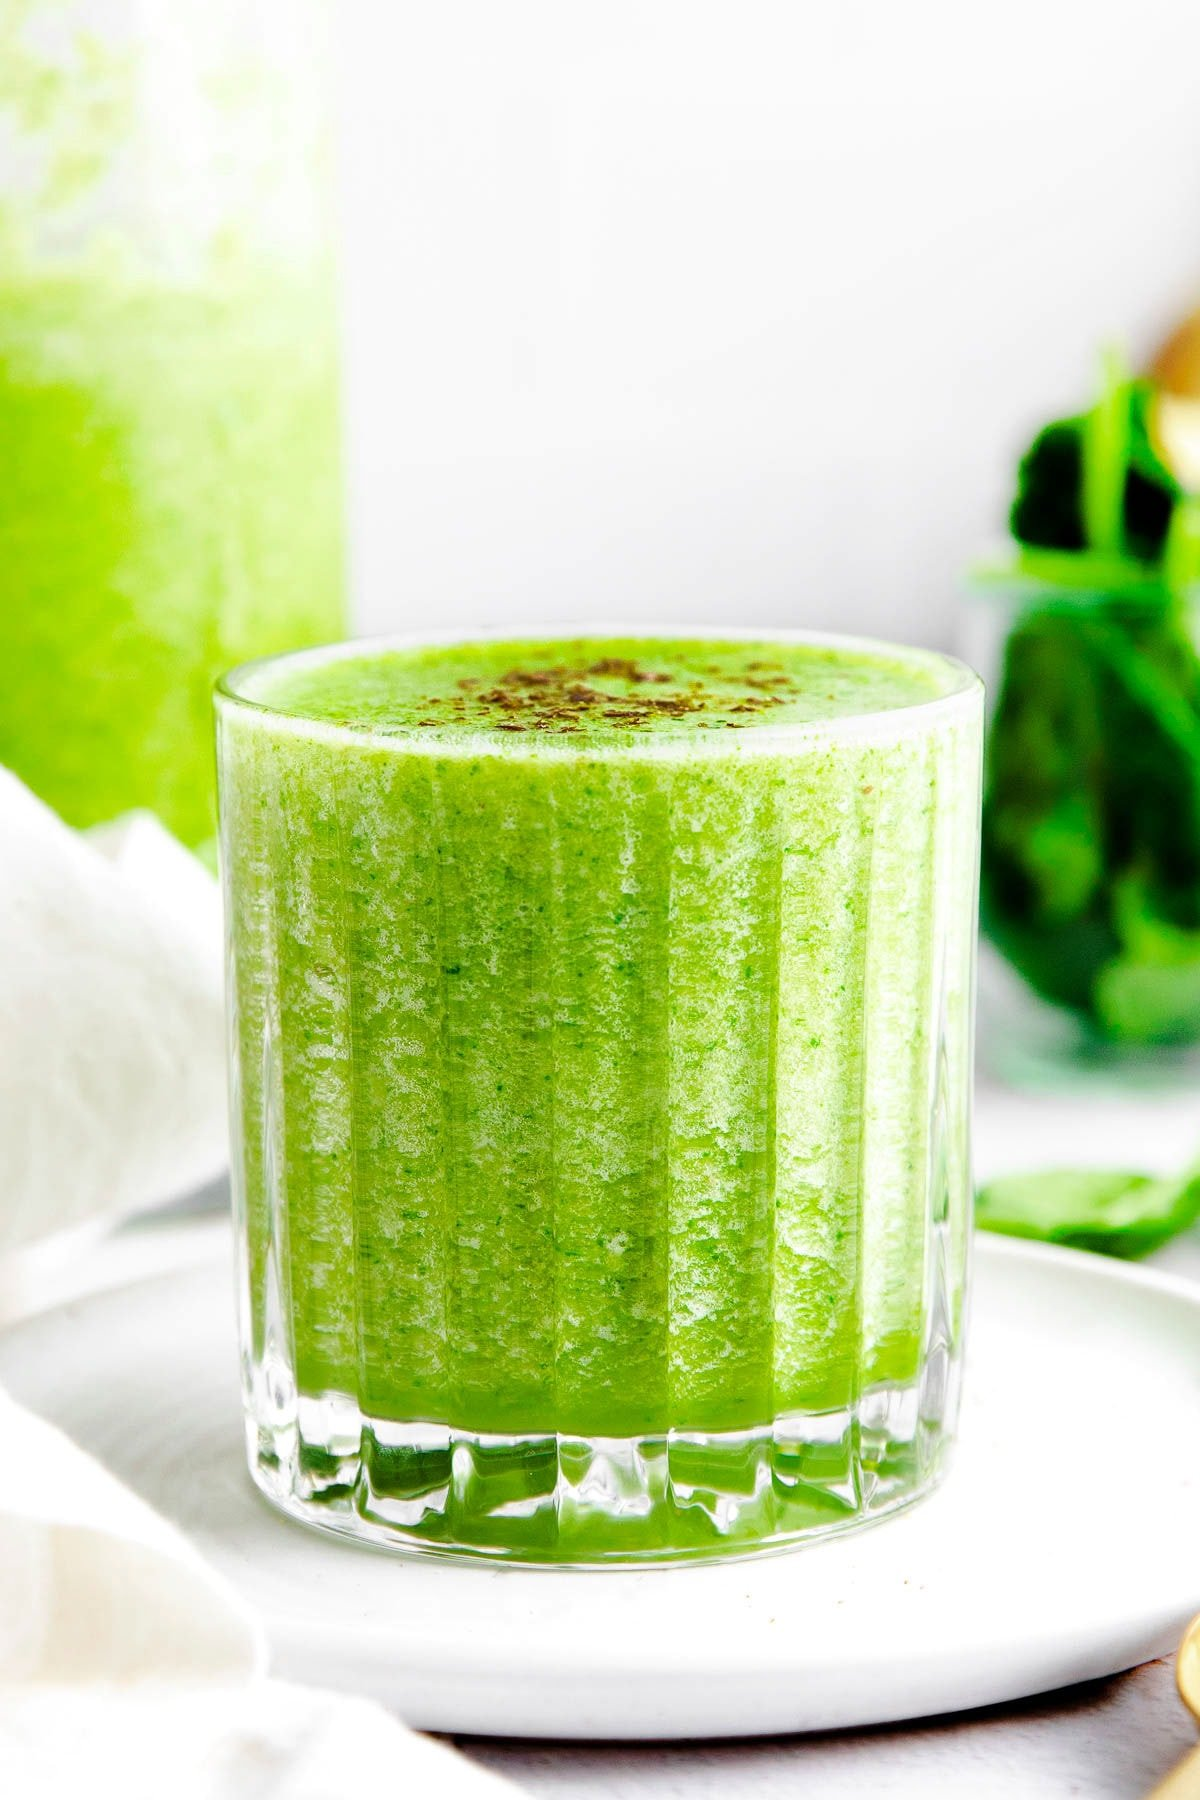 front view of small glass filled to the brim with a green smoothie.